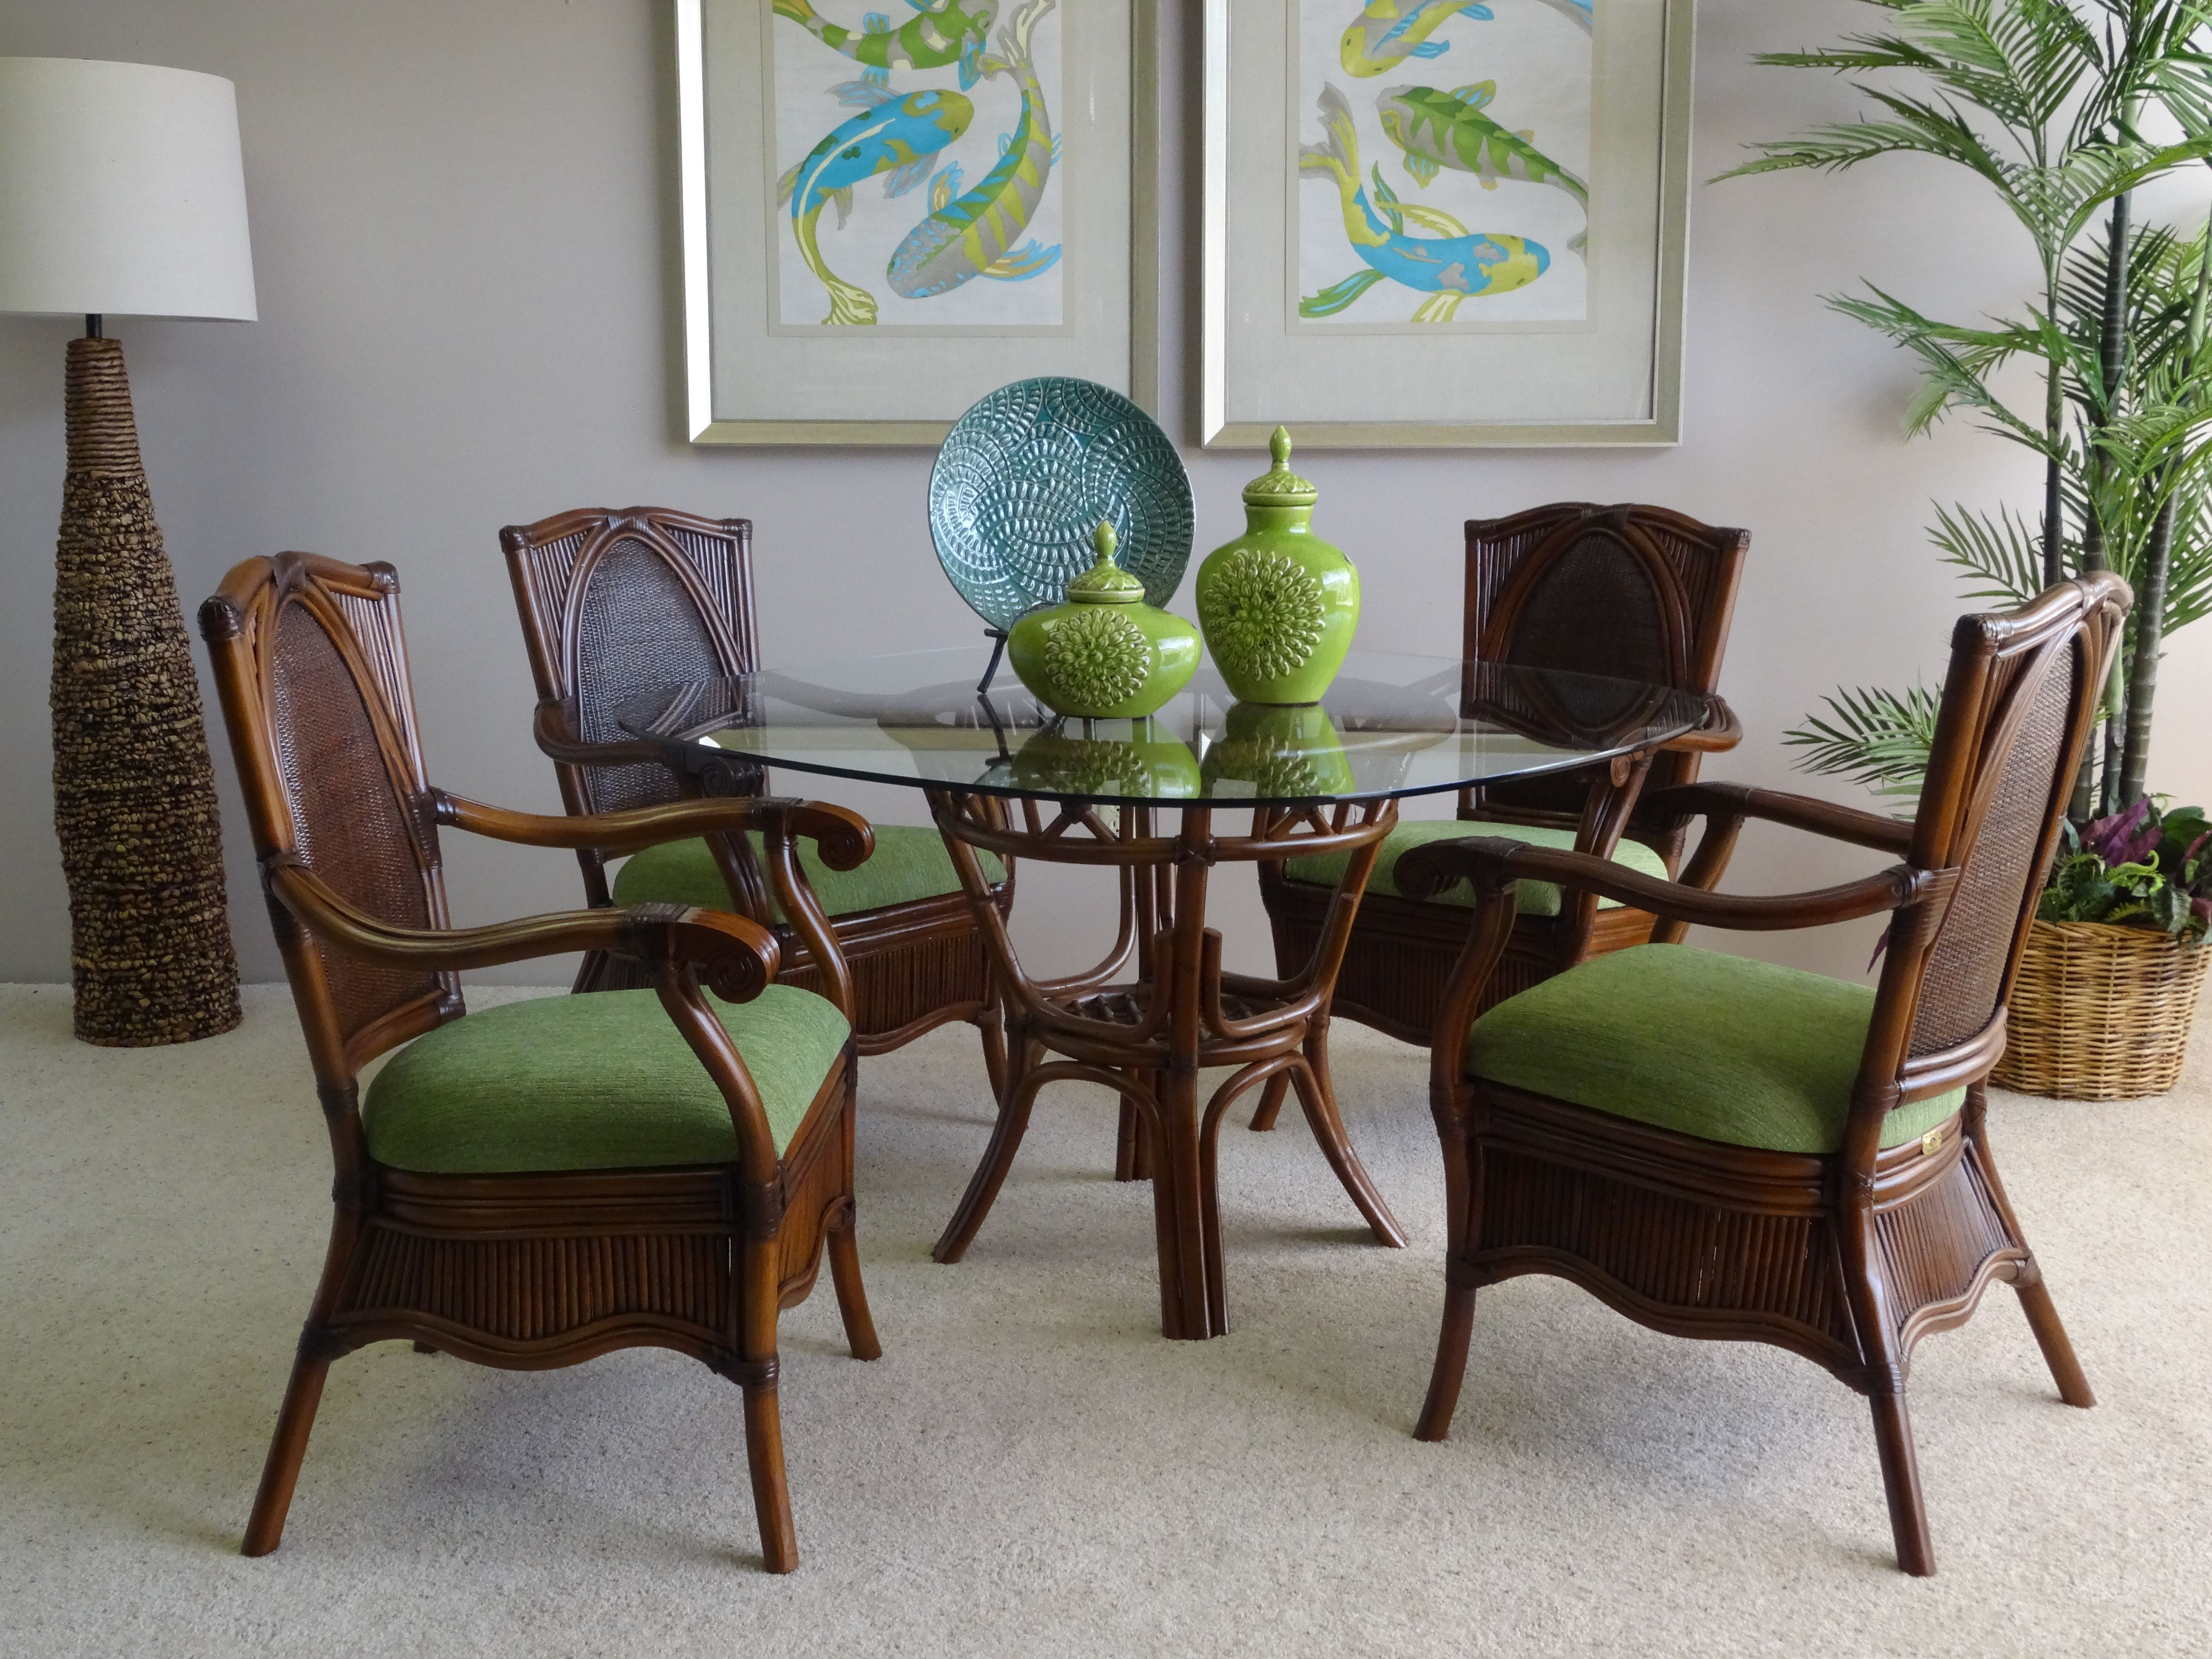 Woodmere Dining Set Fruitwood This Plantation Style Features A Rattan Base With Matching Wicker And Chairs